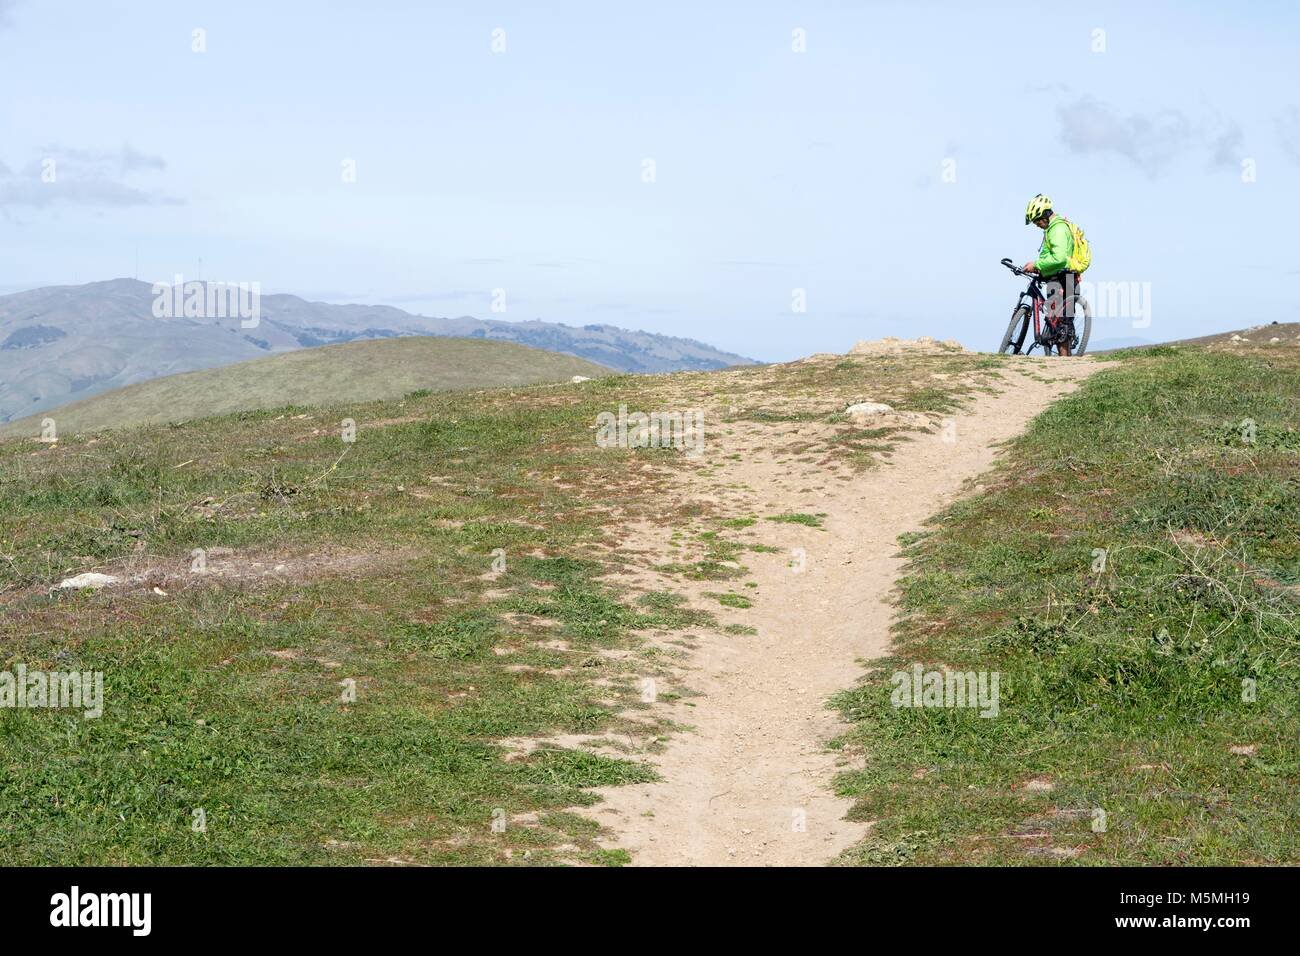 A man takes a break from mountain biking at Sierra Vista in San Jose. Stock Photo